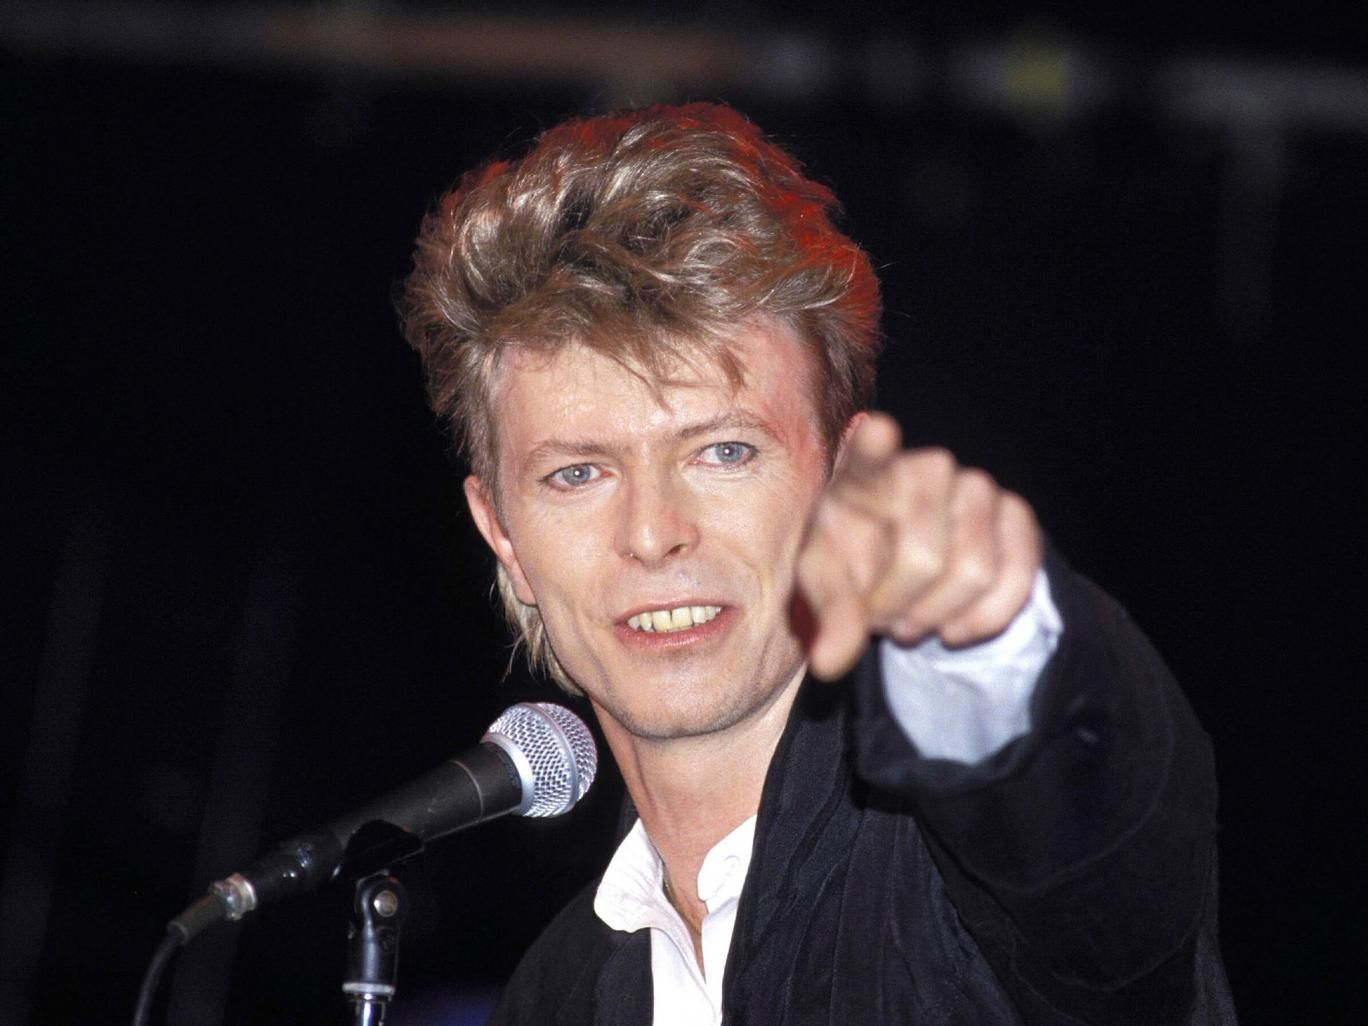 David Bowie: The life lessons the iconic artist taught us | People | News | The Independent